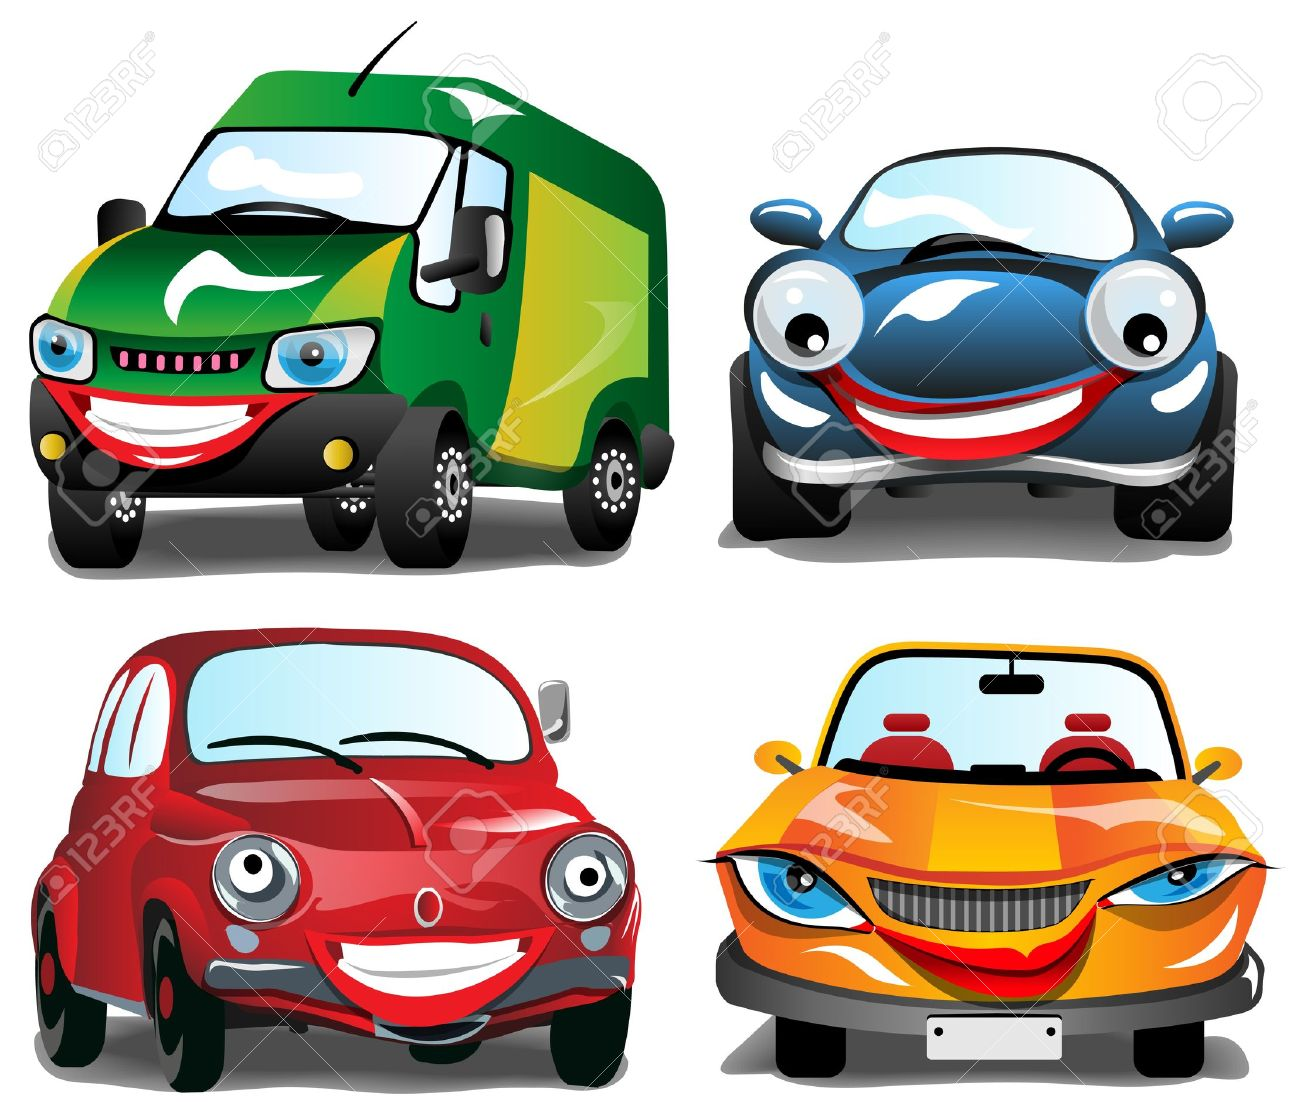 smiling car 4 different smiling cars in 4 colors royalty free